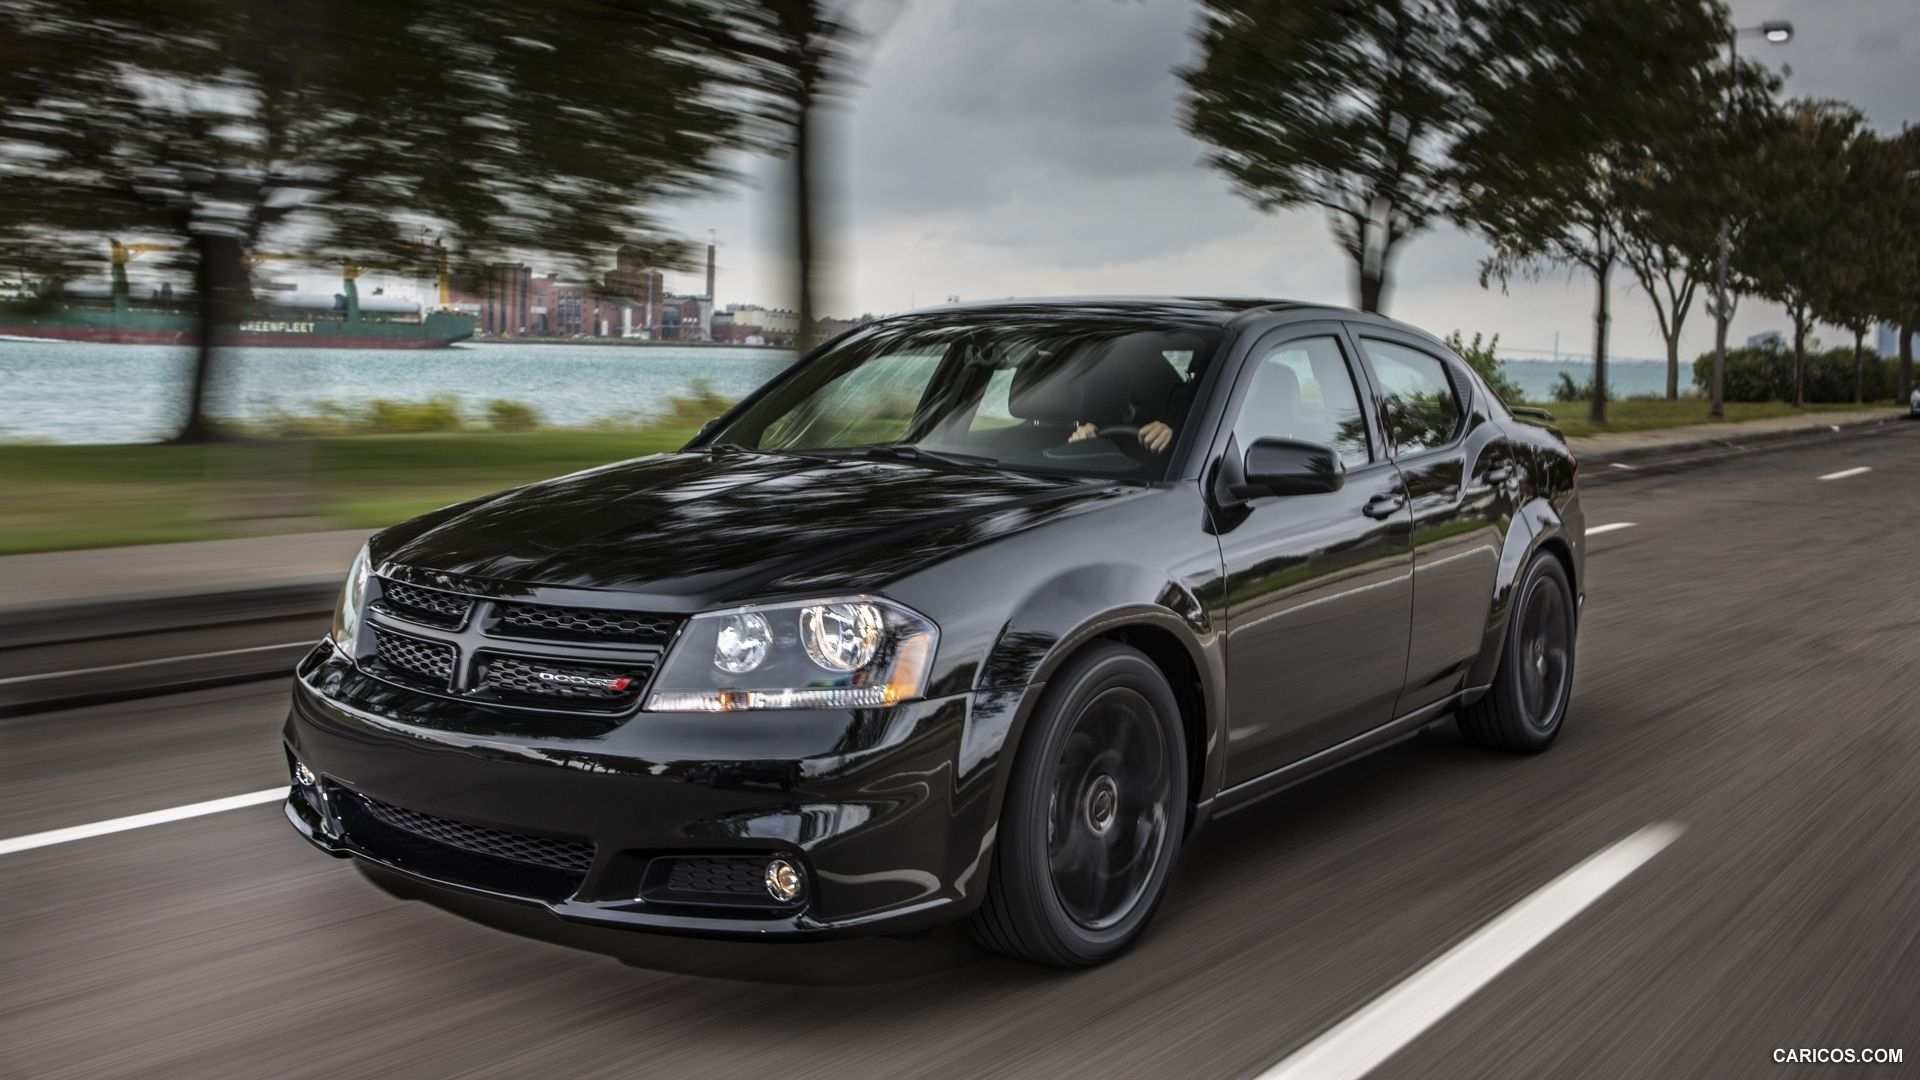 34 The Best 2019 Dodge Avenger Srt Review And Release Date